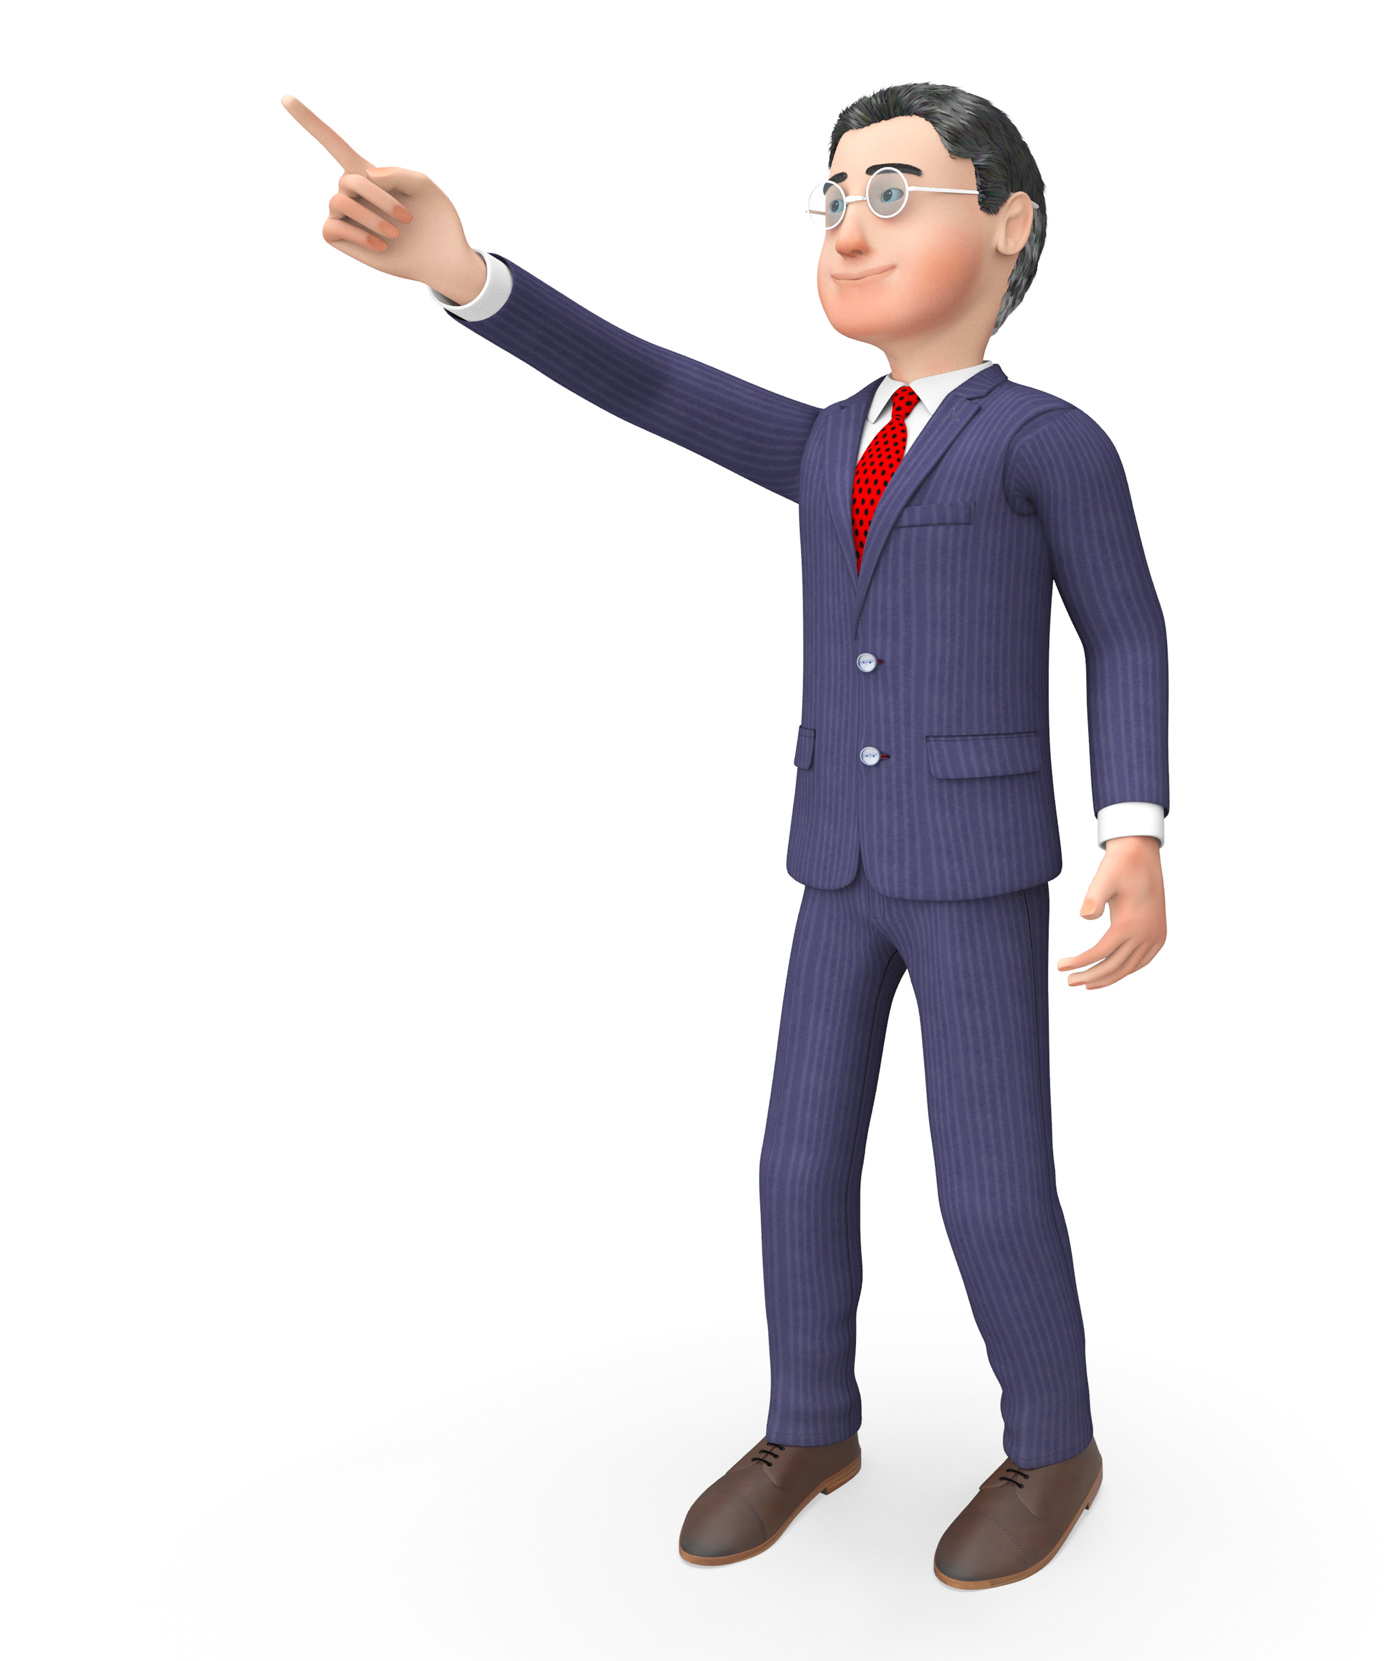 Pointing character means hand up and commercial 3d rendering photo